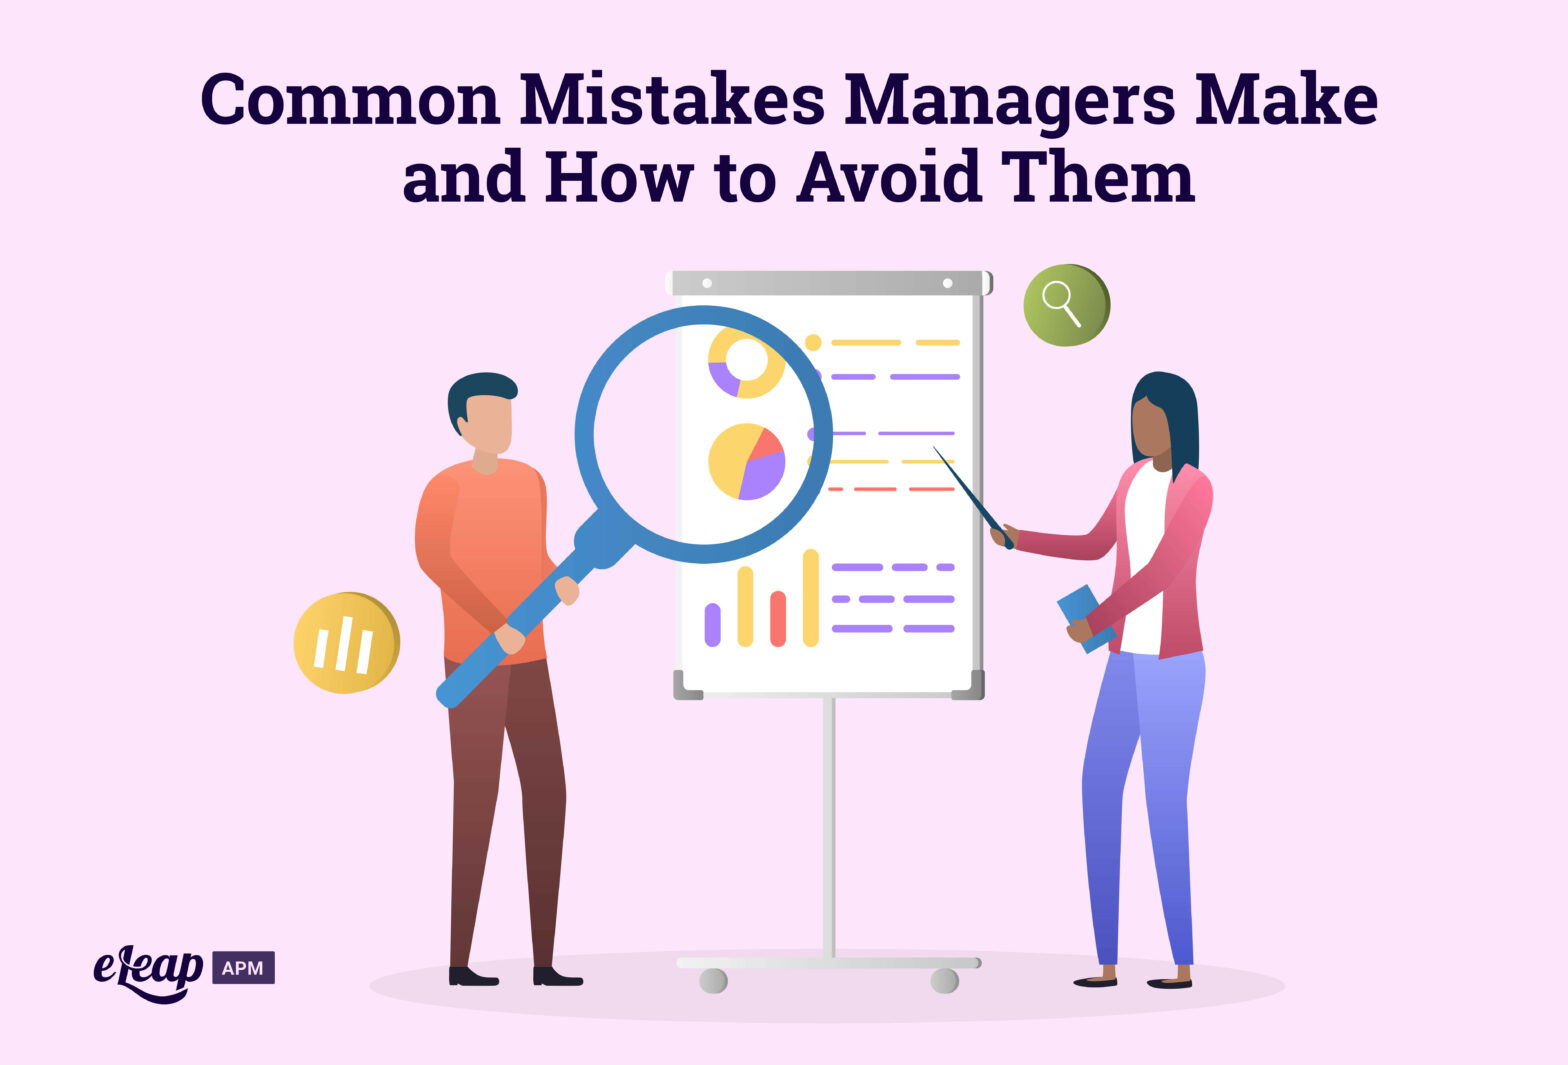 Common Mistakes Managers Make and How to Avoid Them